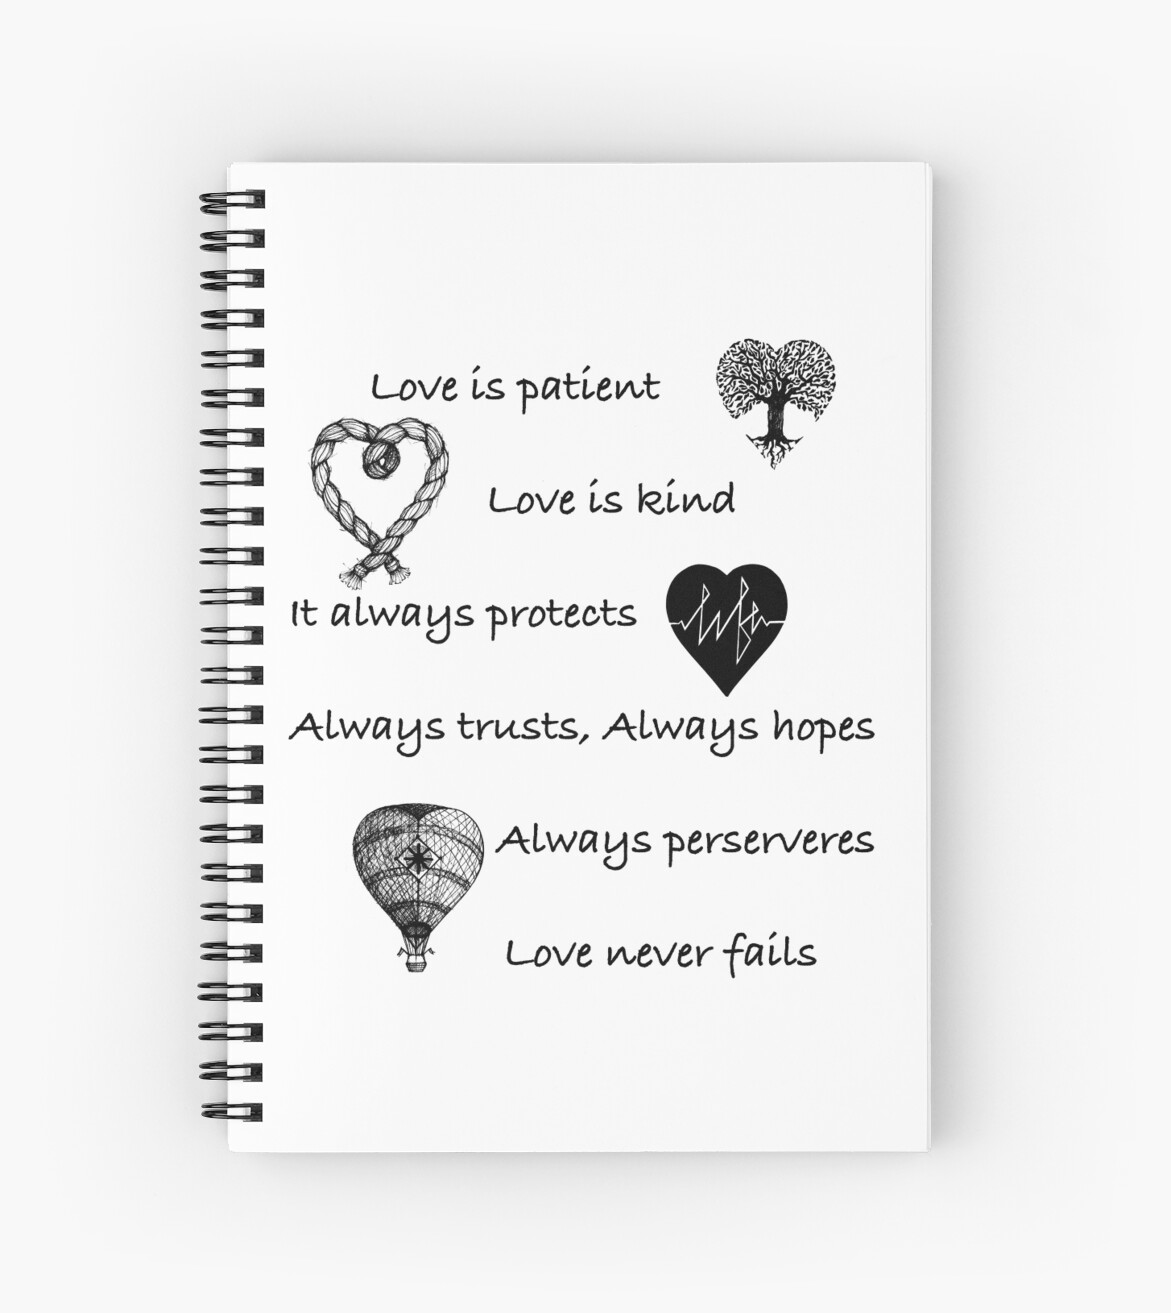 Love is patient...(with hearts) by stylecomfy